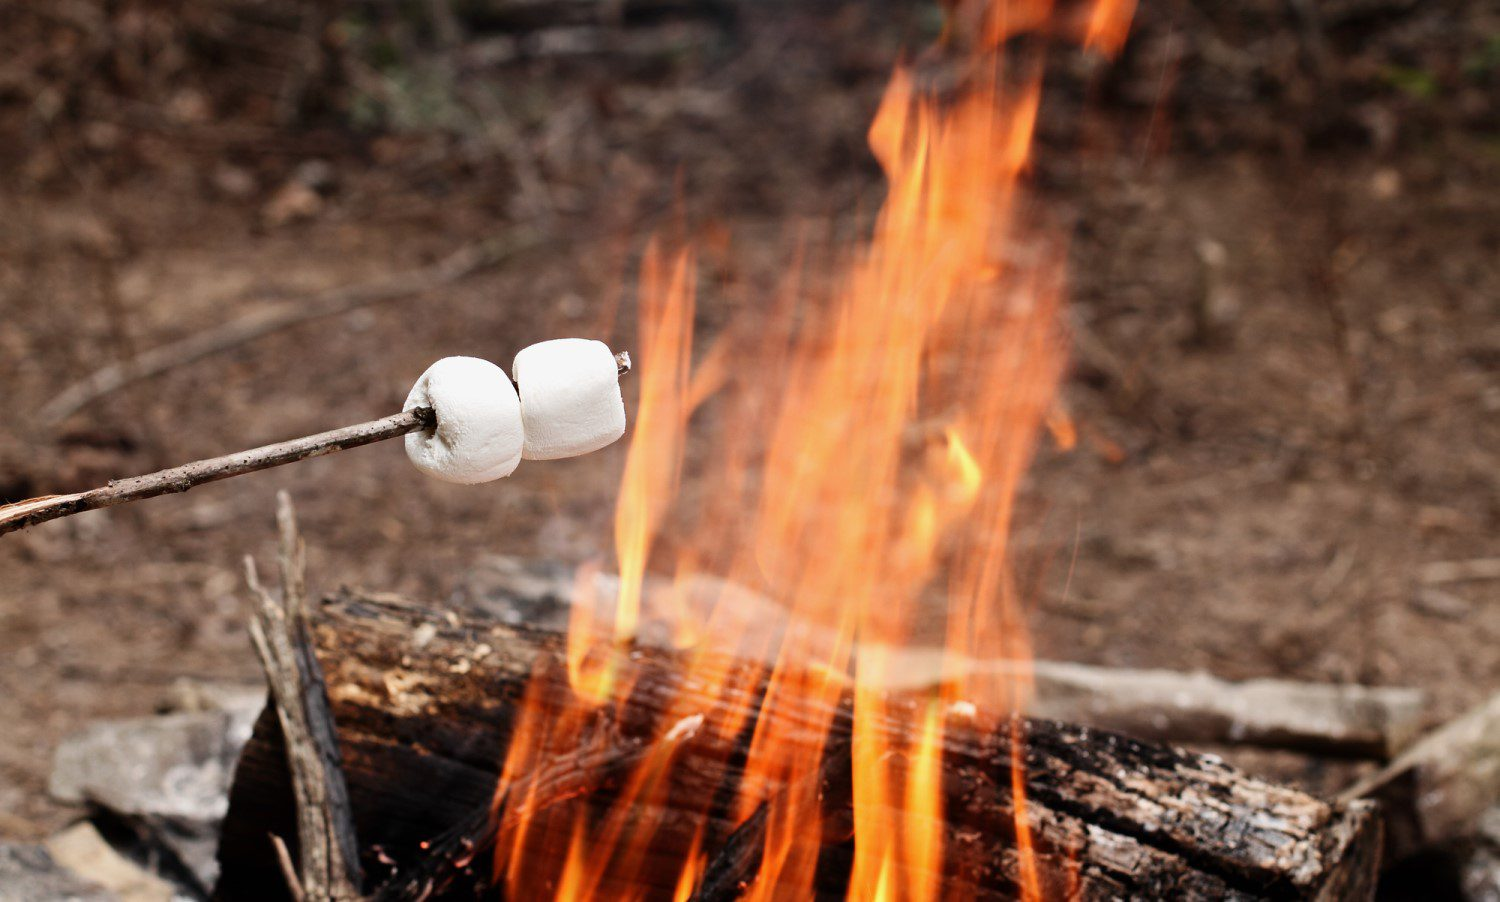 Making marshmallows over a camp fire